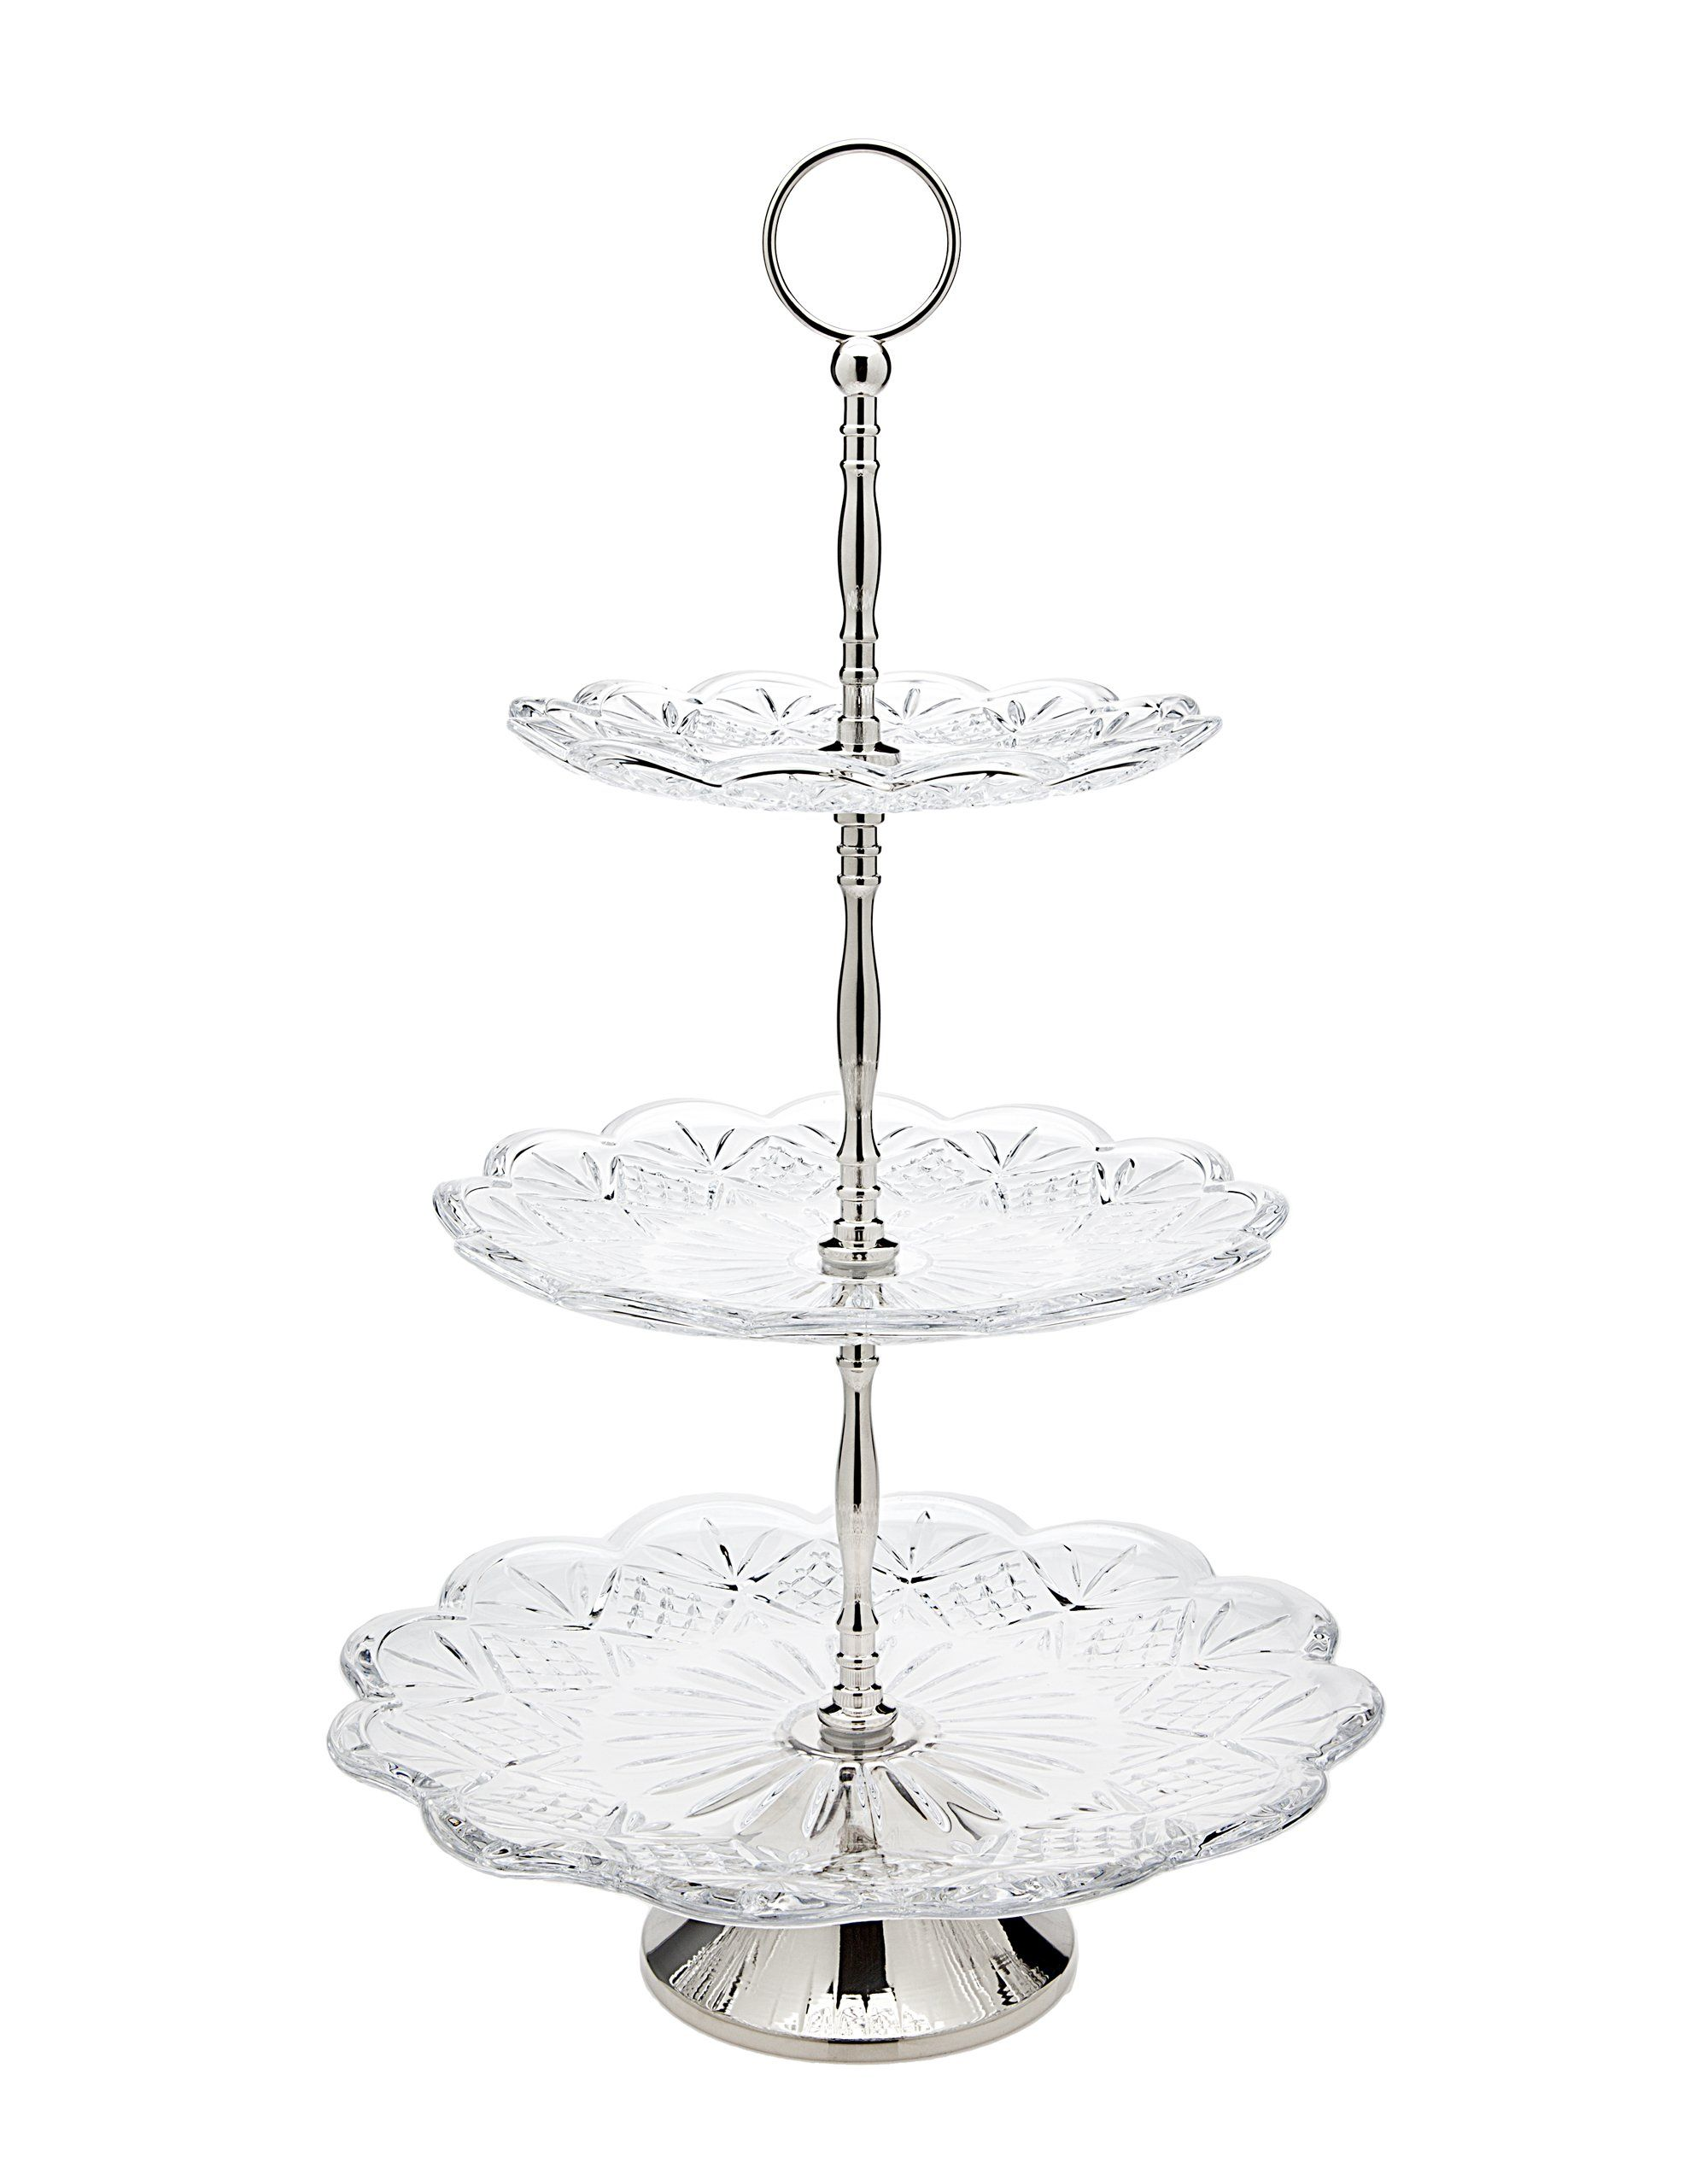 Amazon Com Godinger 25506 Dublin Dinnerware Dublin 3 Tier High Server Trays Kitchen Dining Dublin Crystal Tiered Server Crystal Cake Stand